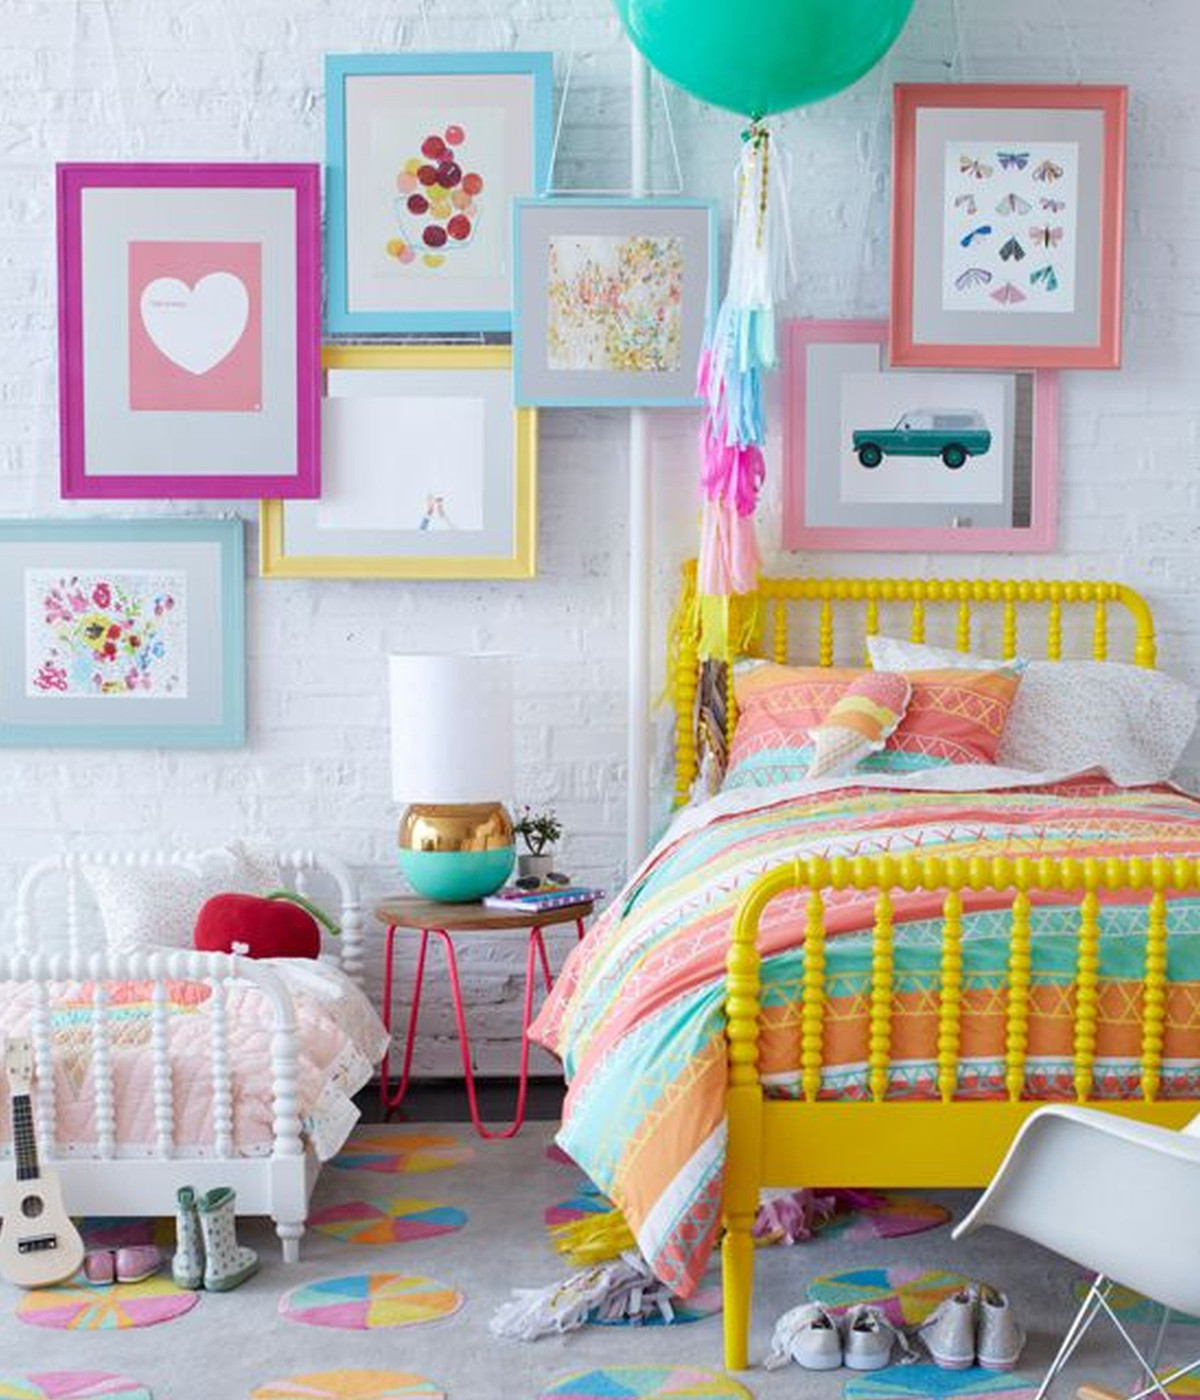 color picture wall - multi-color pastel picture frames, with colored prints, some hung overlapping on a white wall in a child's room with coordinating painted Victorian style Jenny Lind beds - Land of Nod via Atticmag